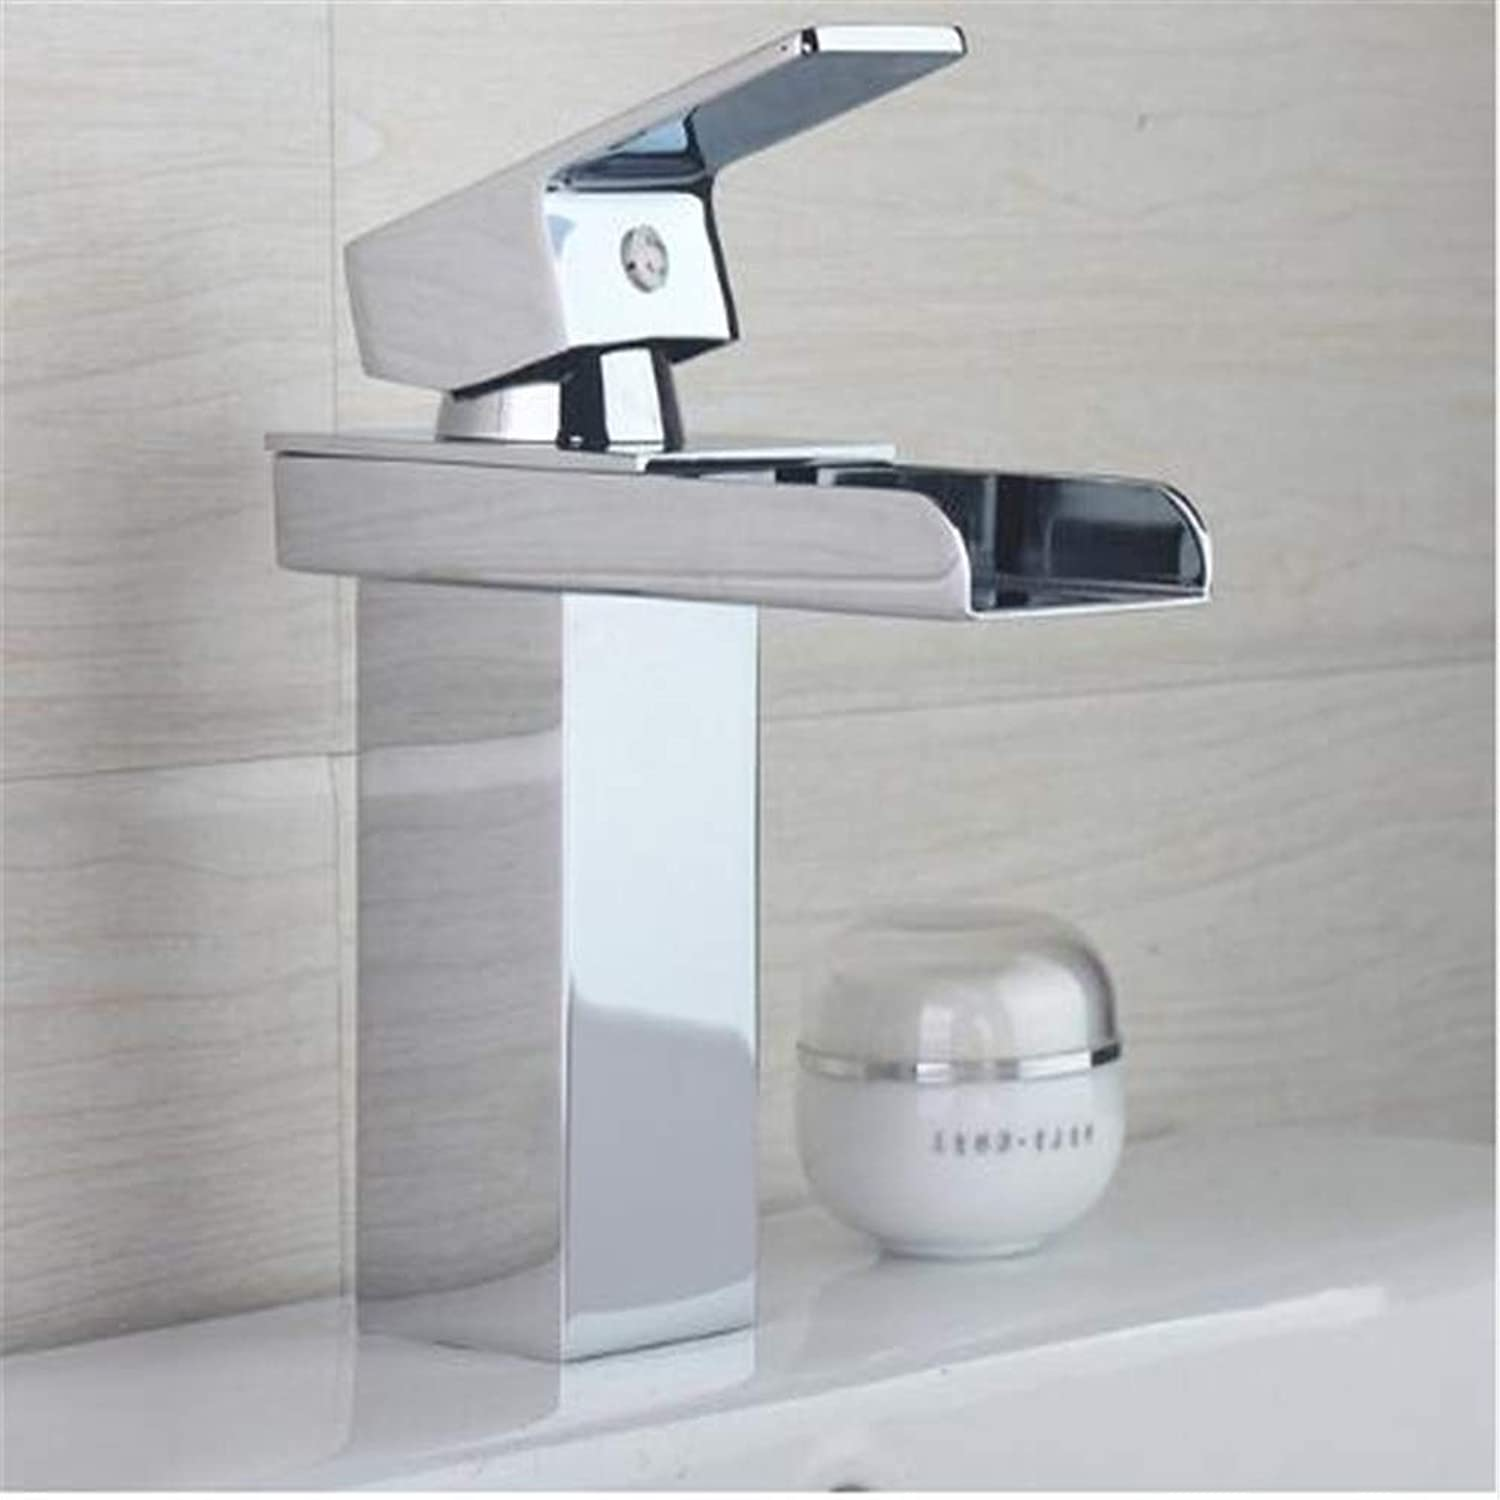 Bathroom Taps Basin Mixer Taps Bathroom Faucet Sink Tapsluxury Bathroom Faucets Waterfall Chrome Polish Basin Taps Hot and Cold Water Bathroom Sink Tap Mixer Faucet Torneira ( color   - , Size   - )